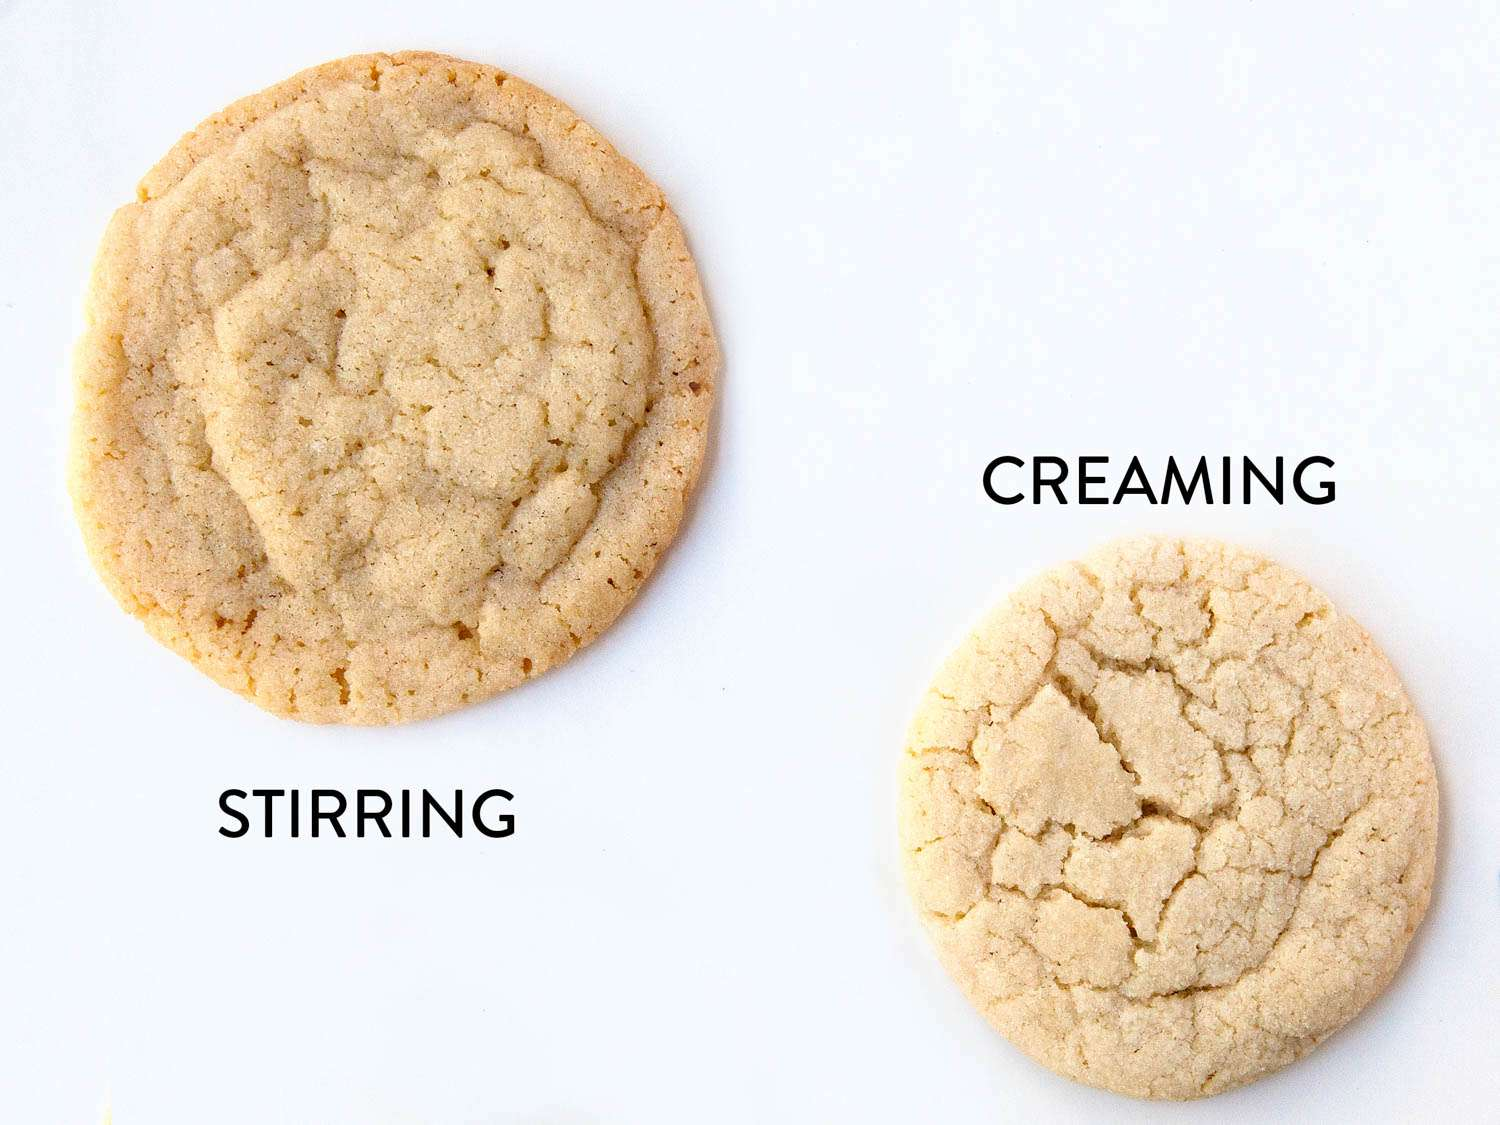 A side by side comparison of two sugar cookies, one with the batter stirred, the other with the batter creamed. The stirred cookie spreads more and the creamed cookie rises better.